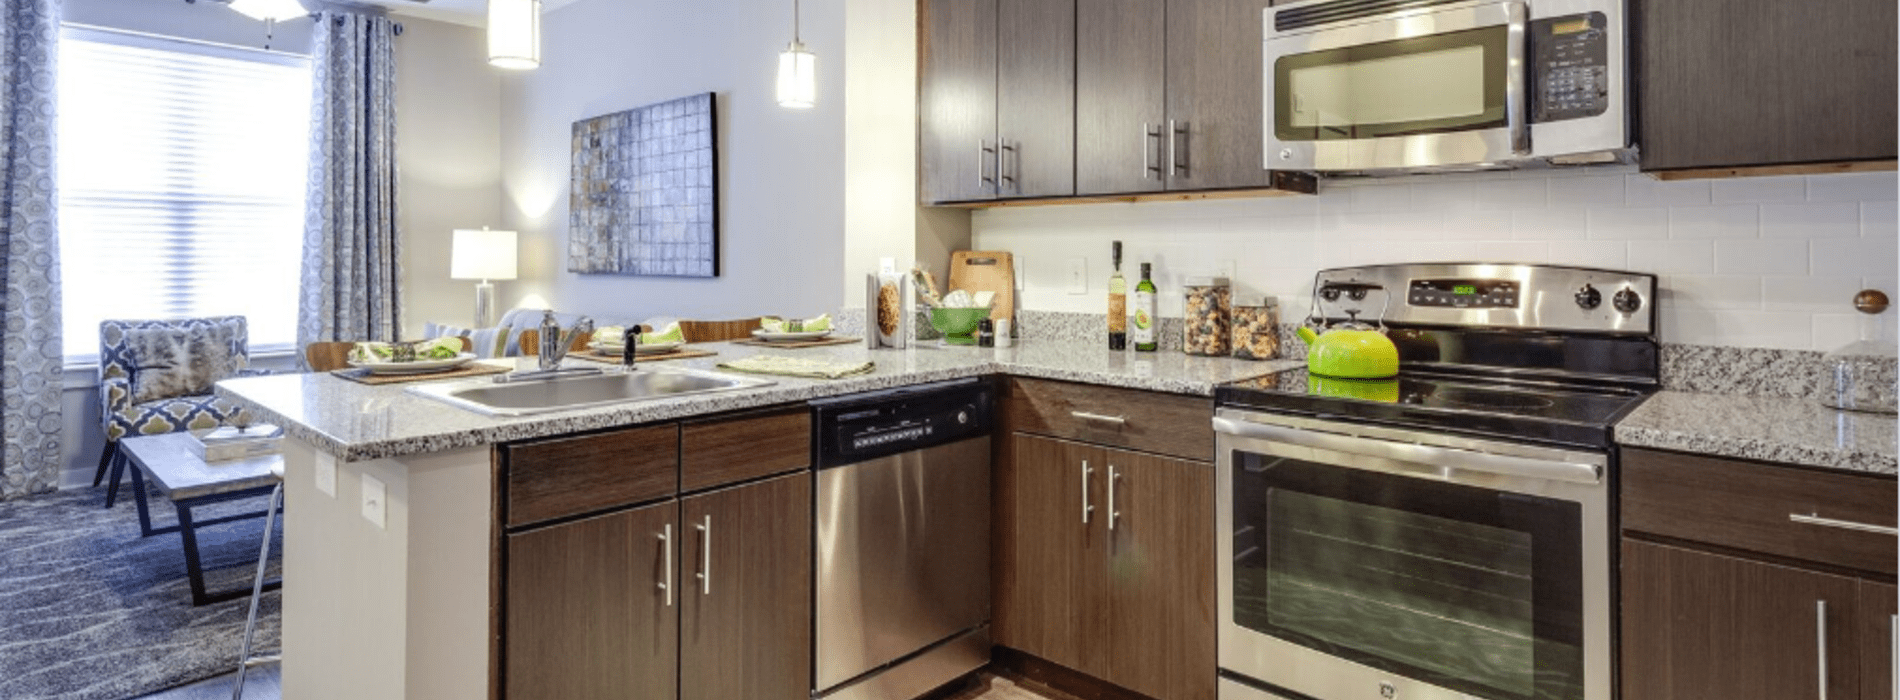 Kitchen-Whetstone Apartments